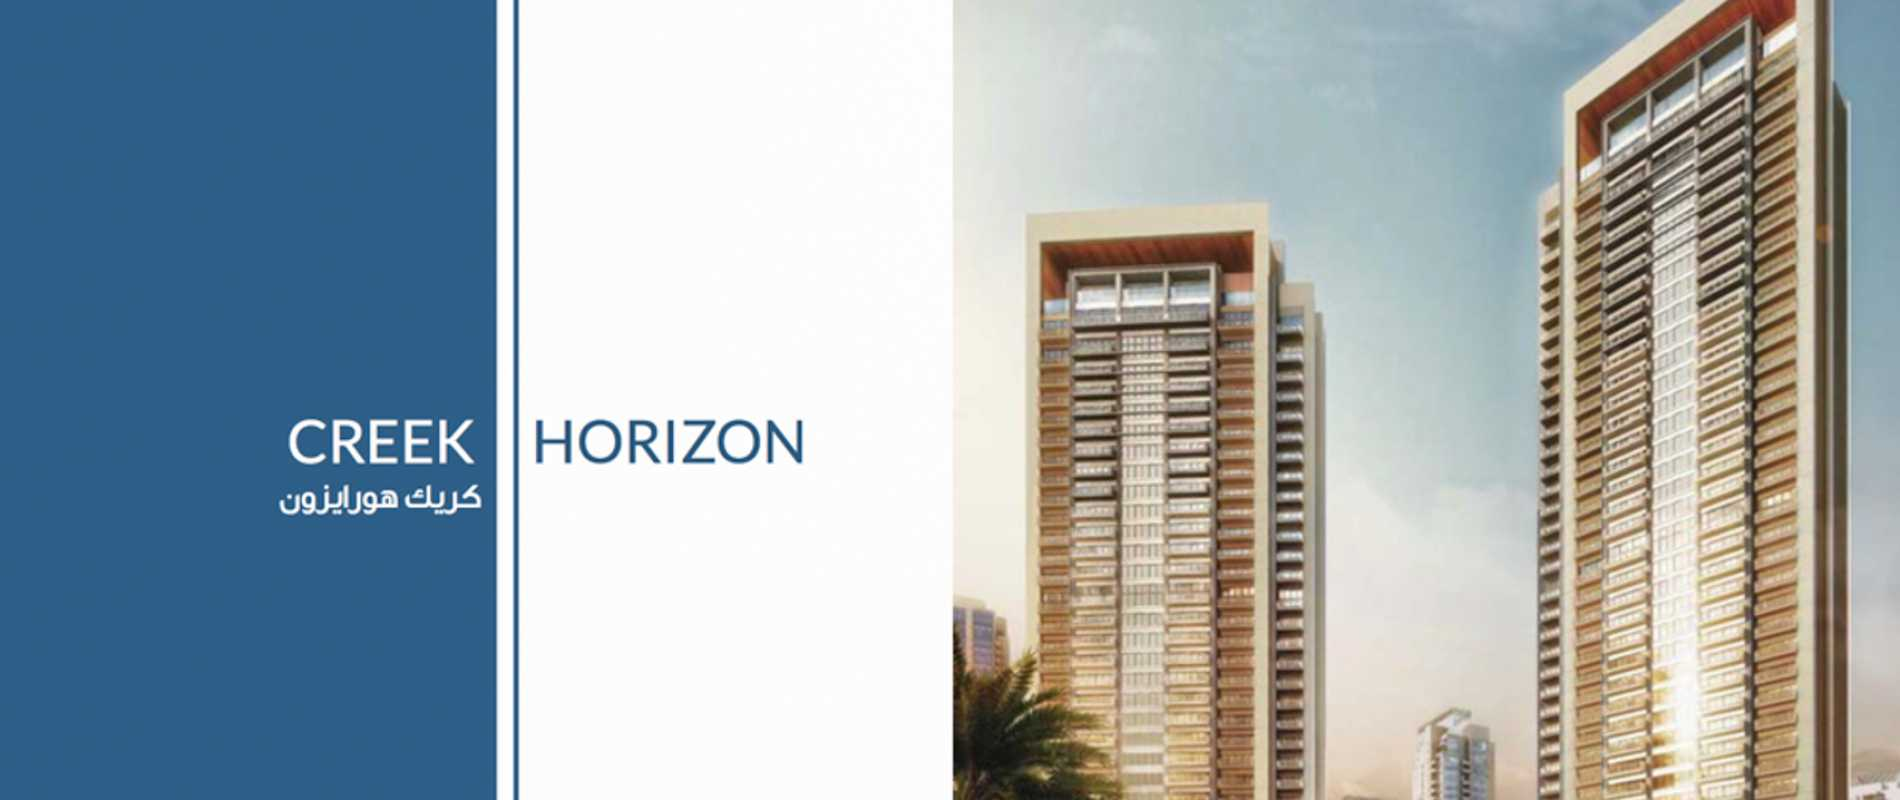 Luxury Property Dubai 3 Bedroom Apartment for sale in Creek Horizon Dubai Creek Harbour